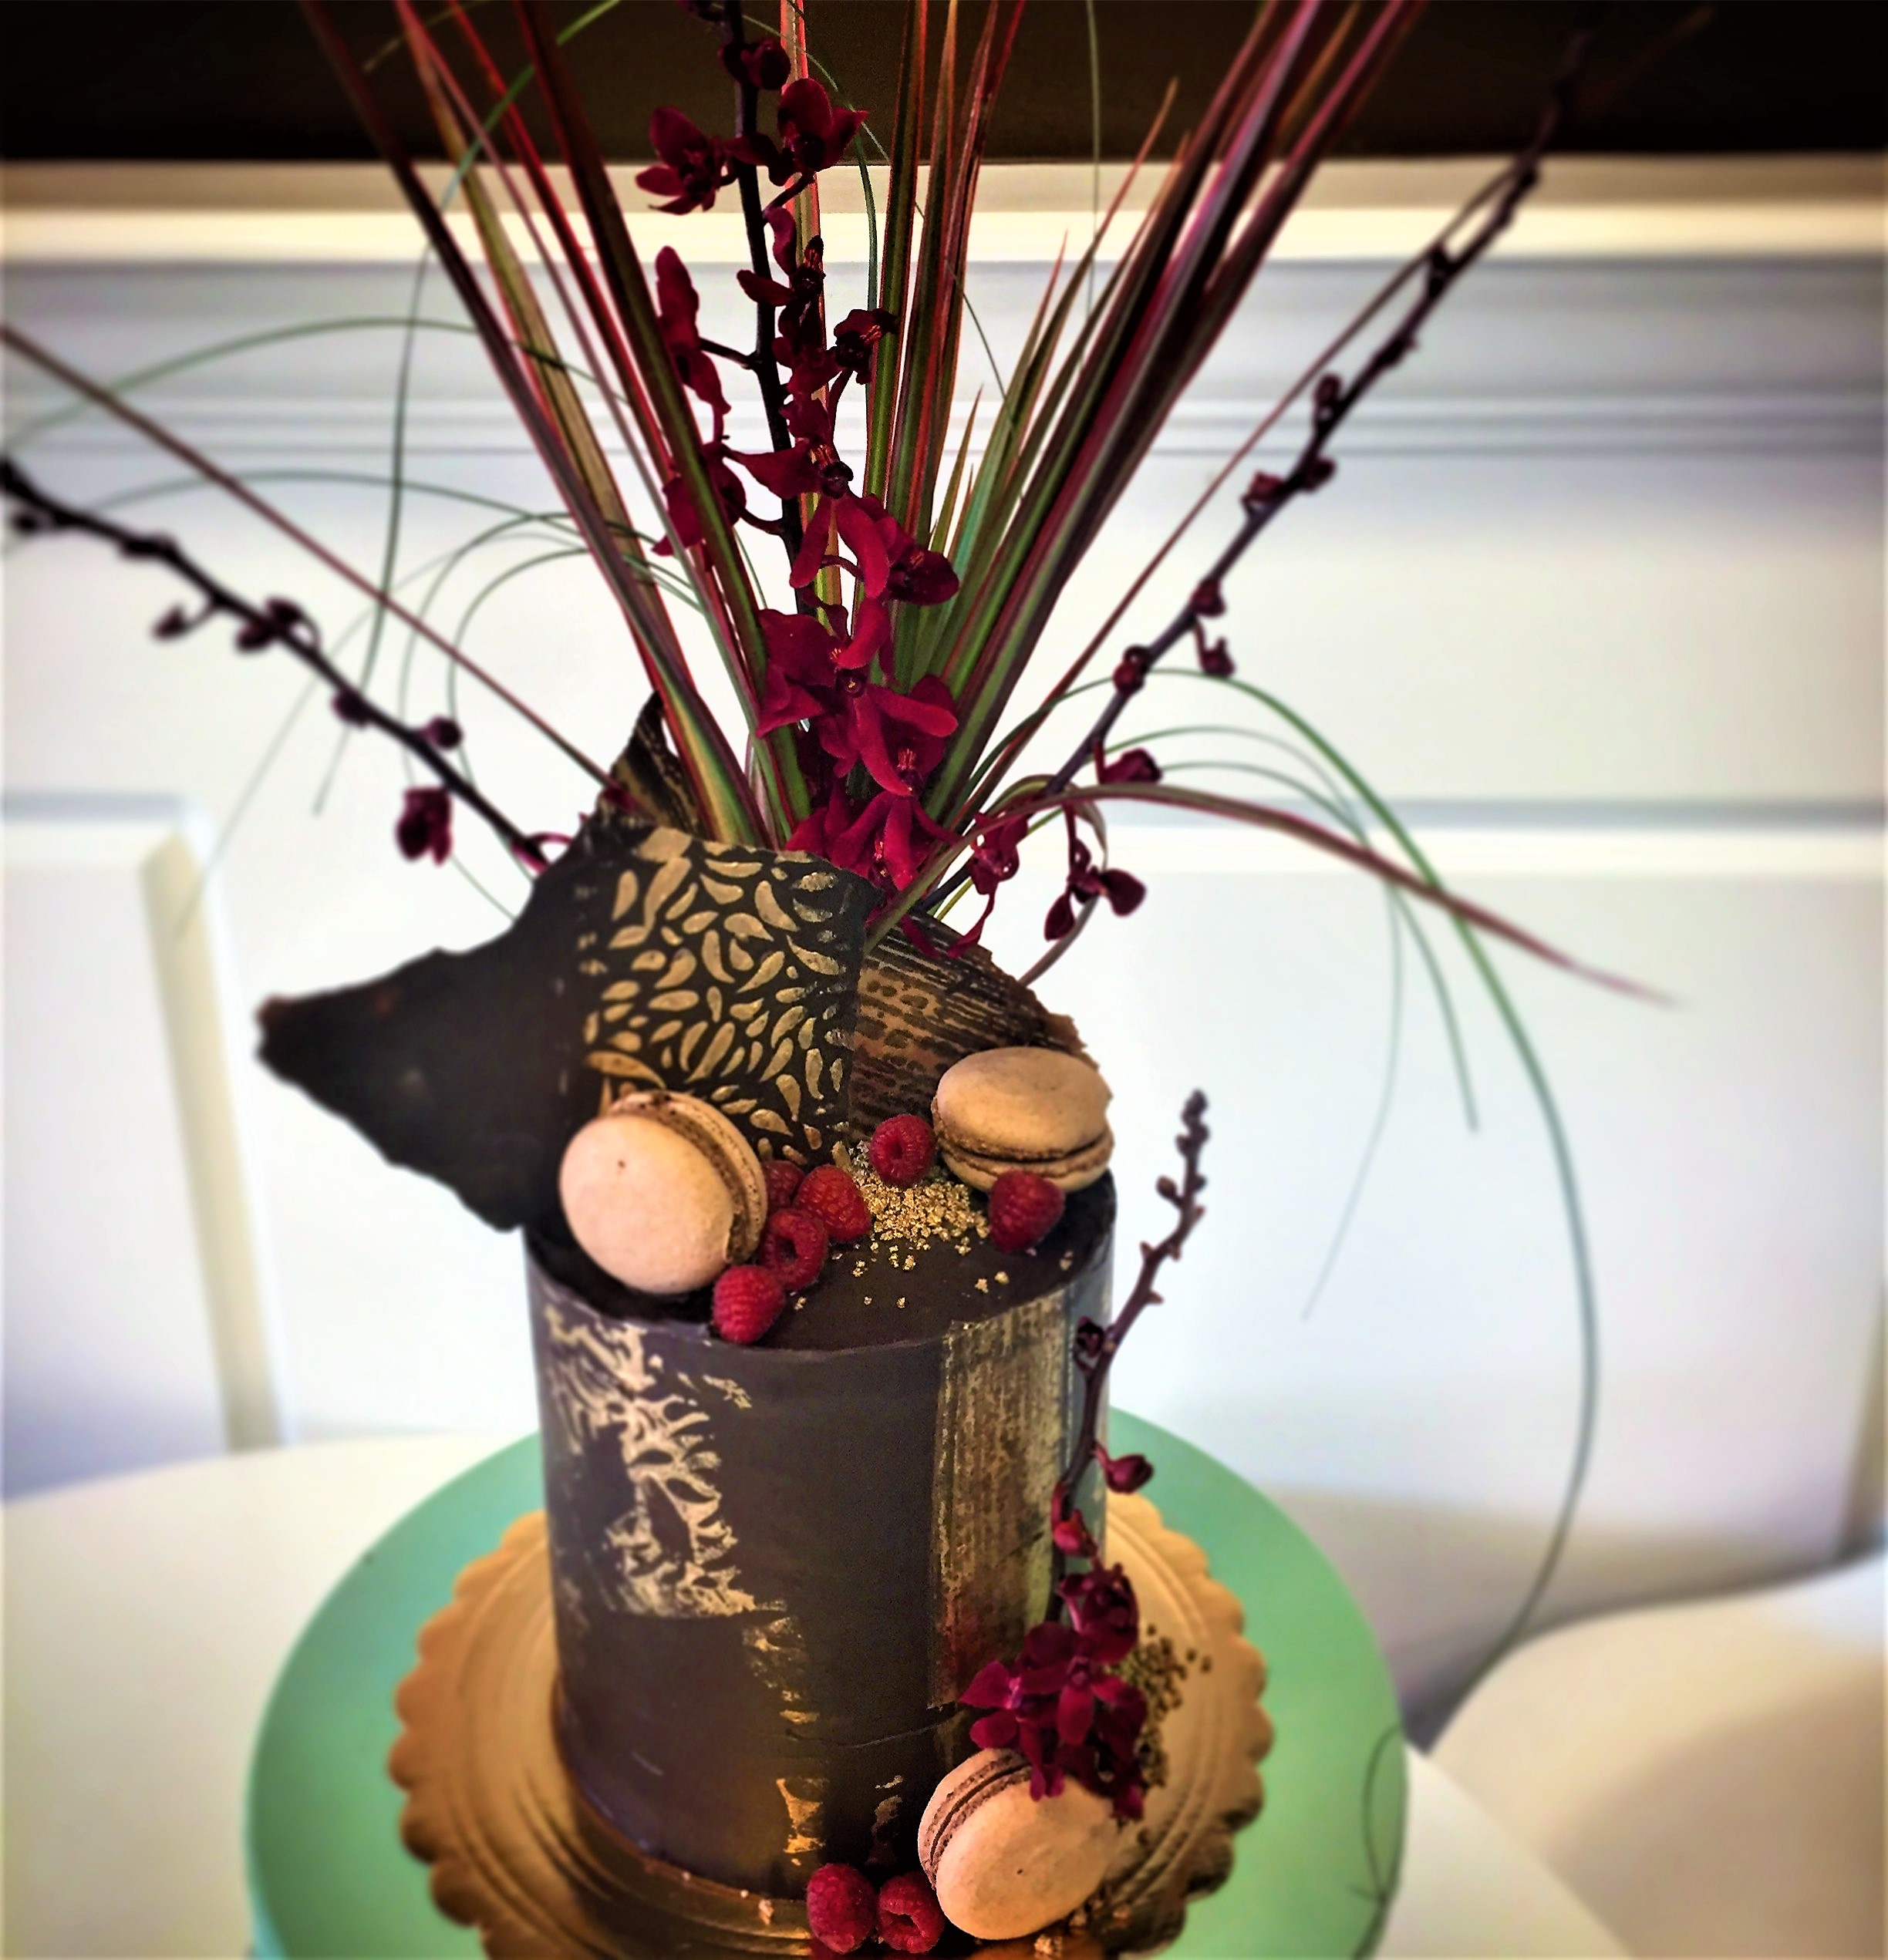 6'' chocolate coma auction cake